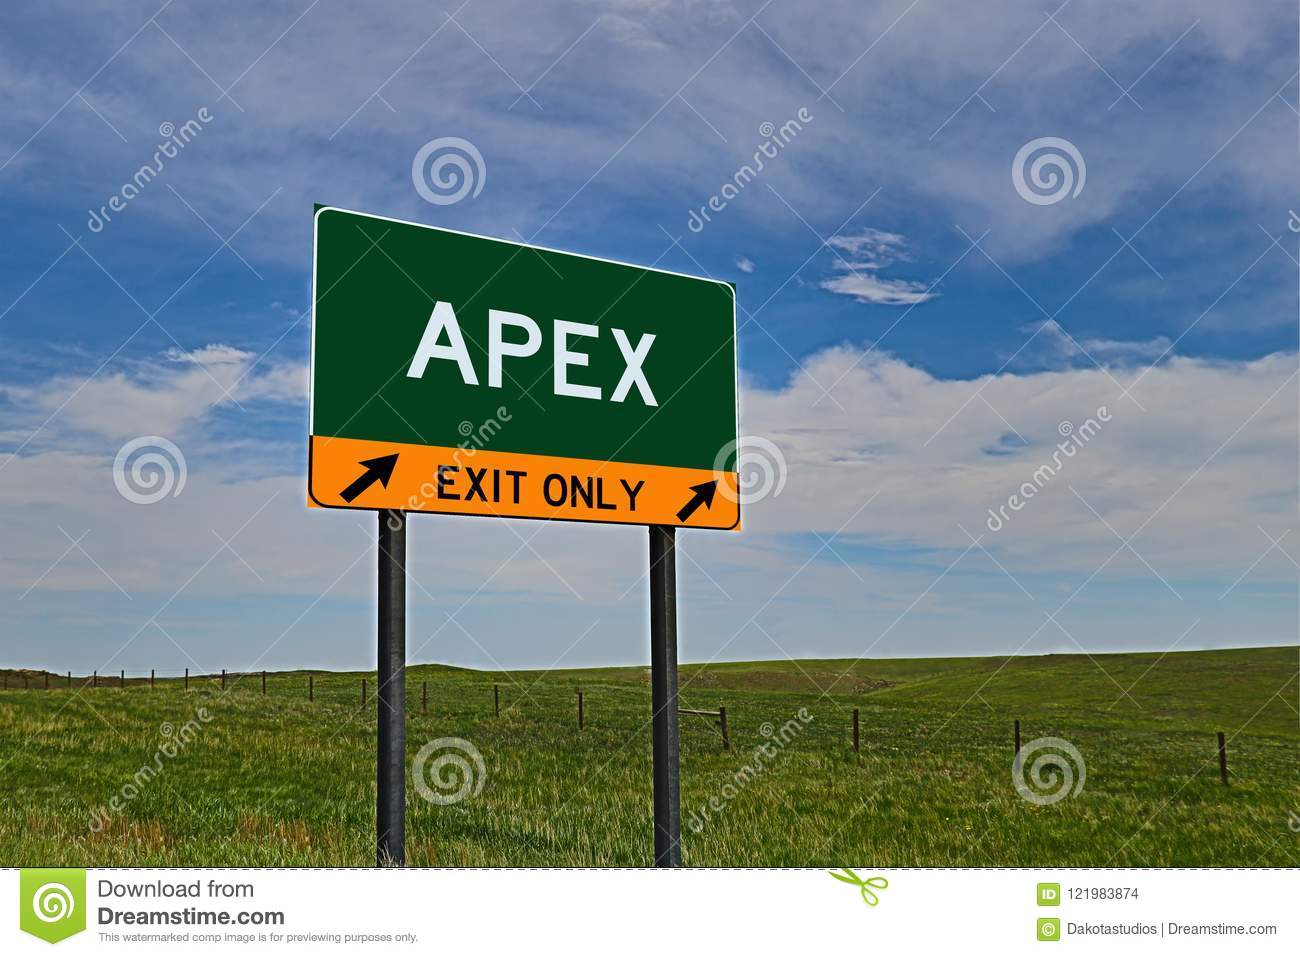 US Highway Exit Sign for Apex